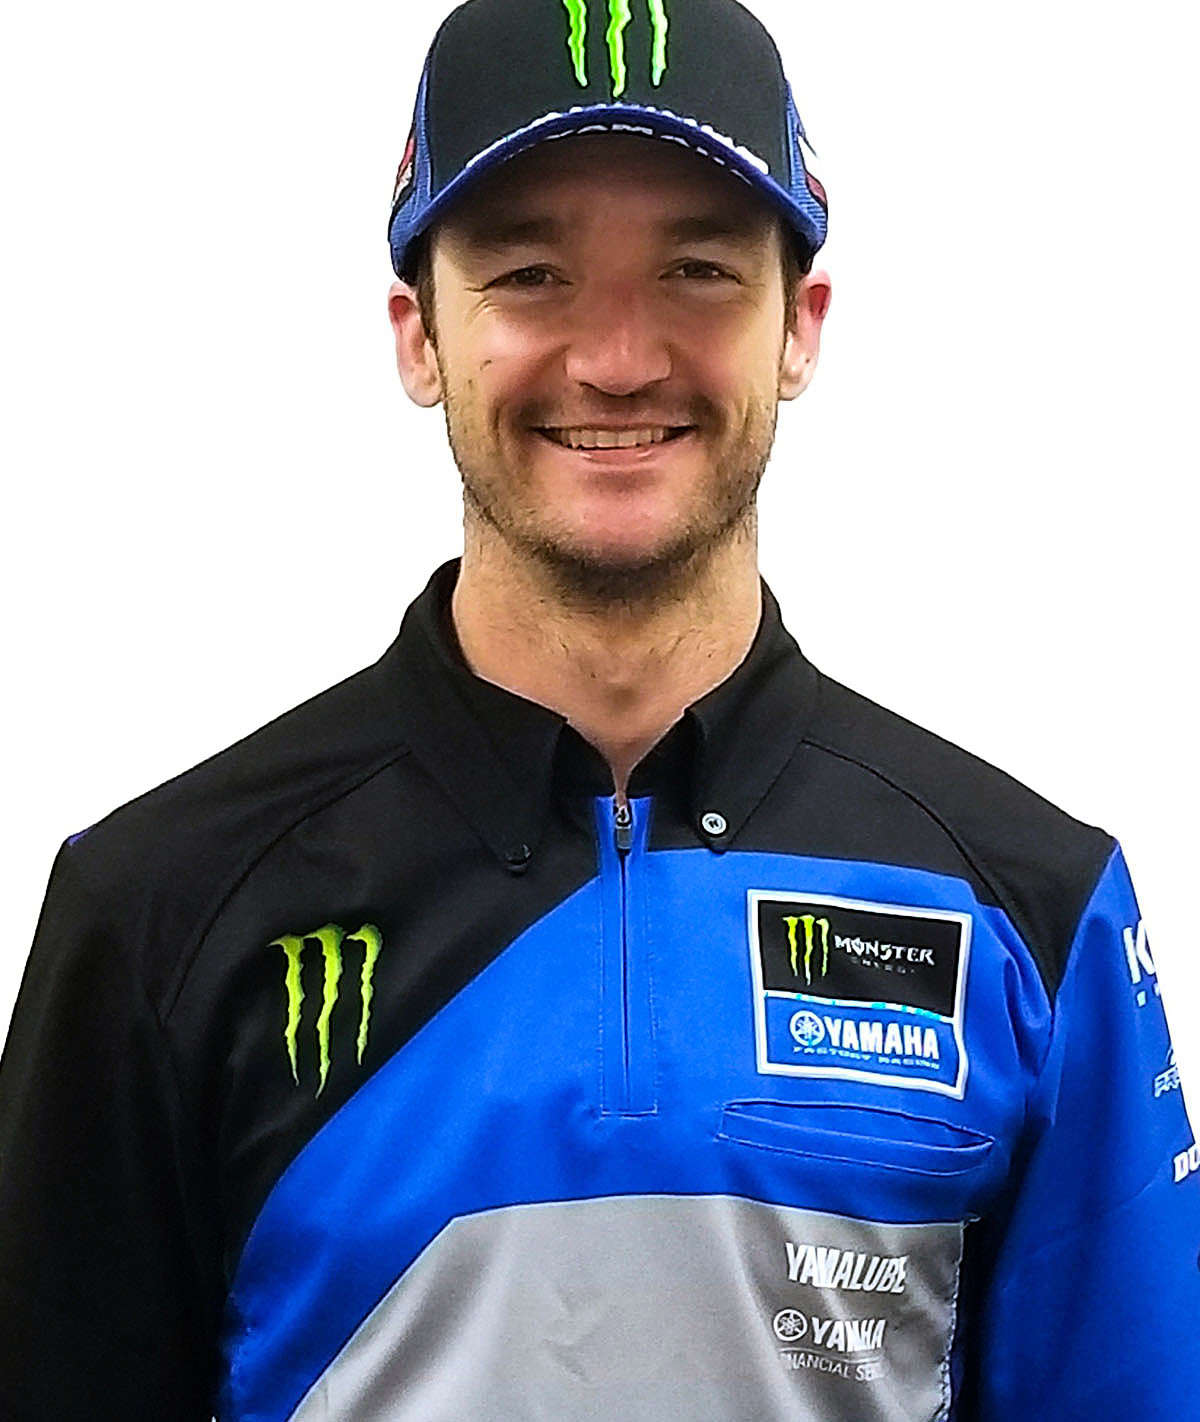 Dean Ferris to Fill in on Factory Yamaha USA